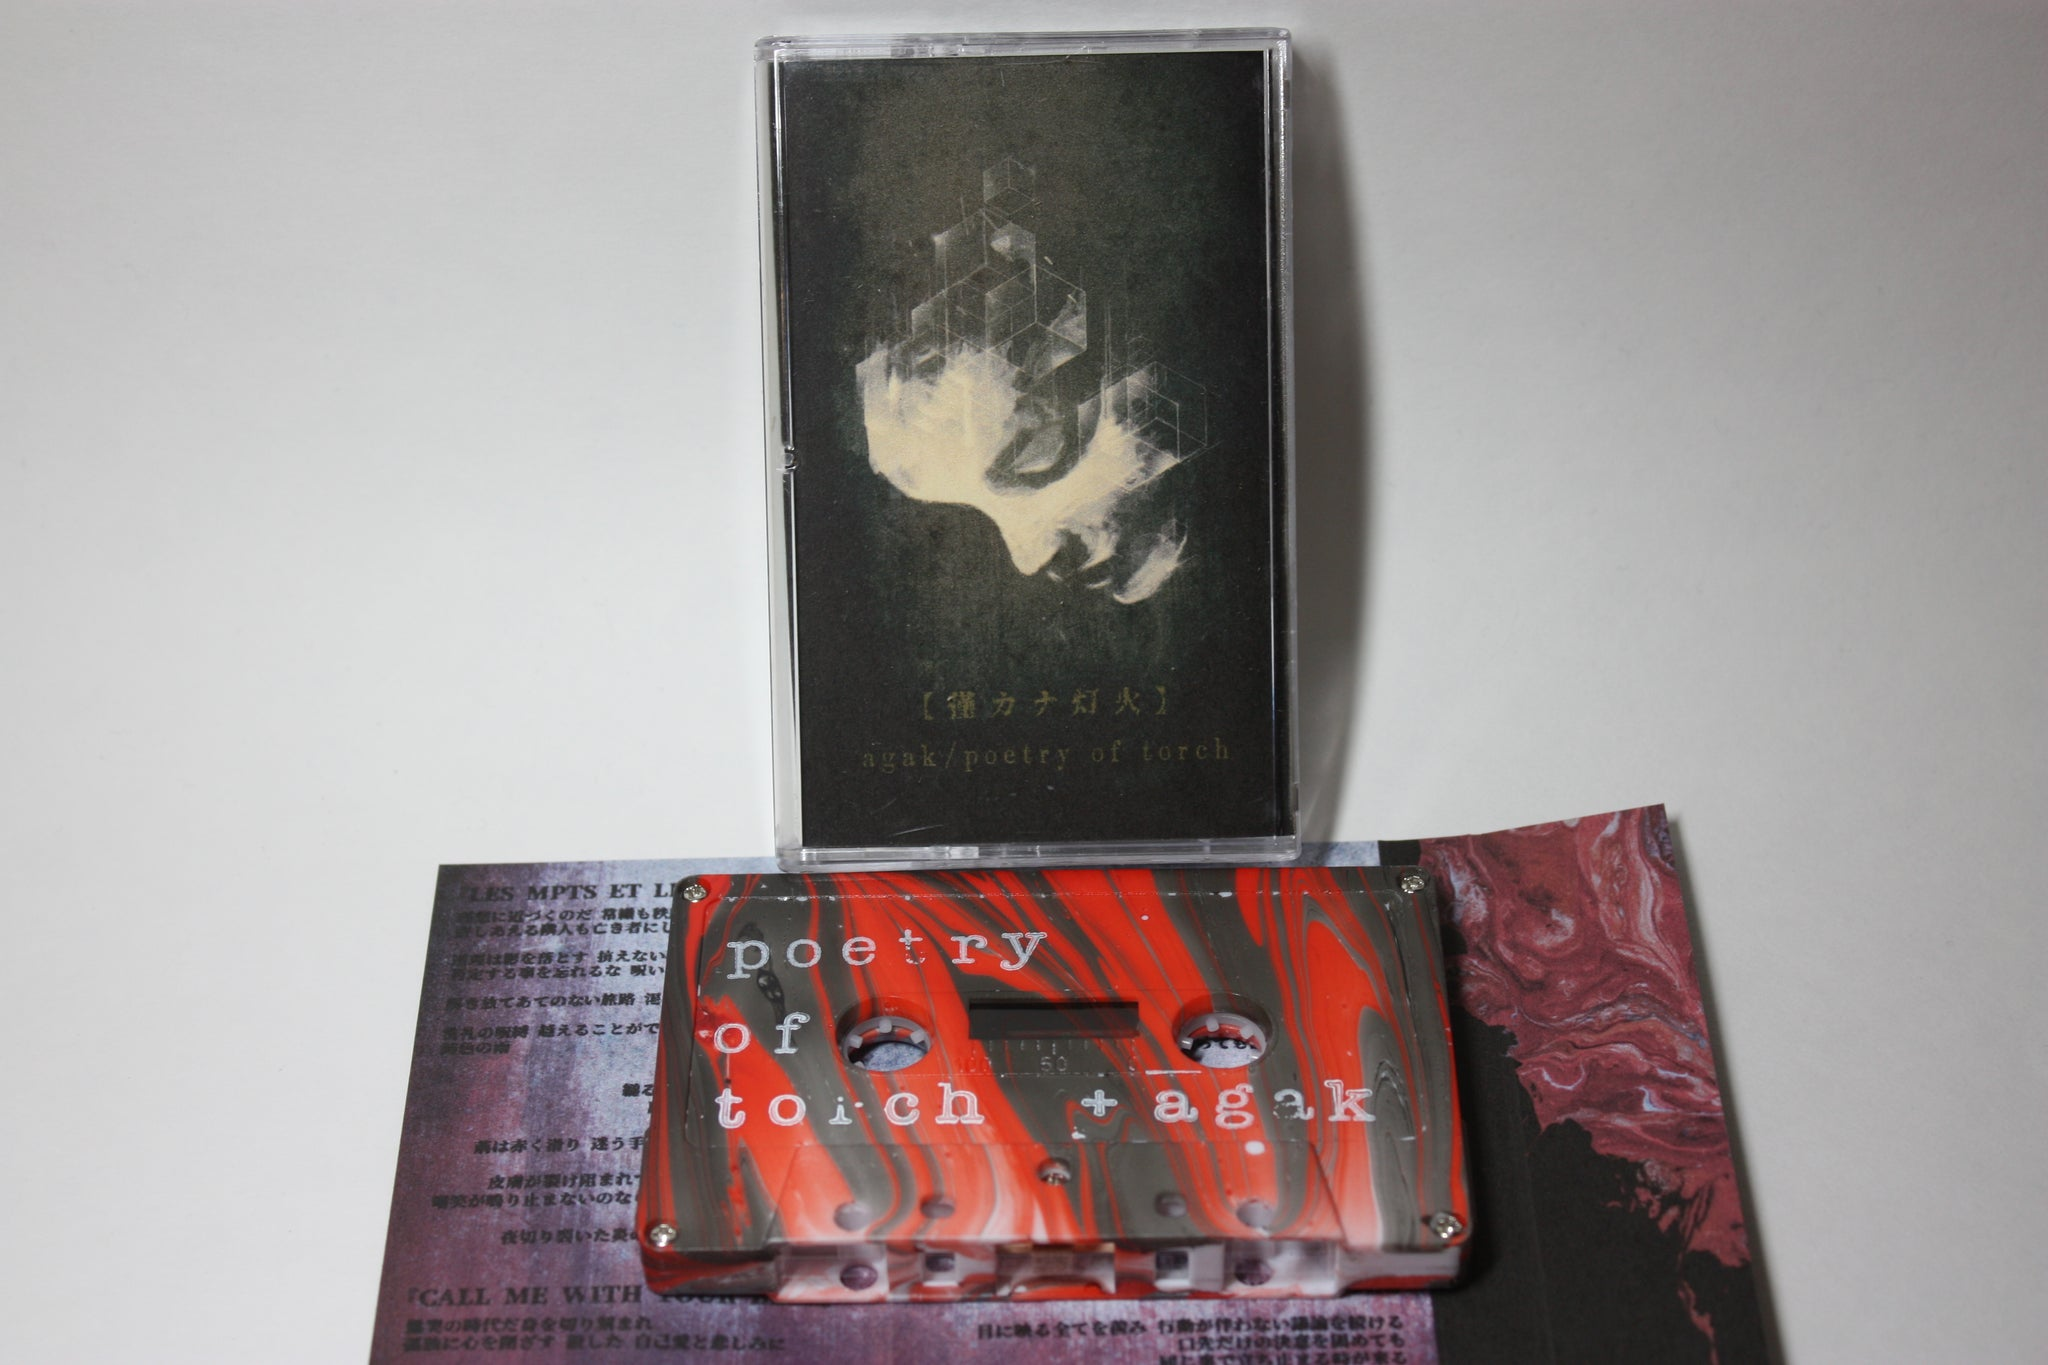 POETRY OF TORCH + AGAK - Split (tape)